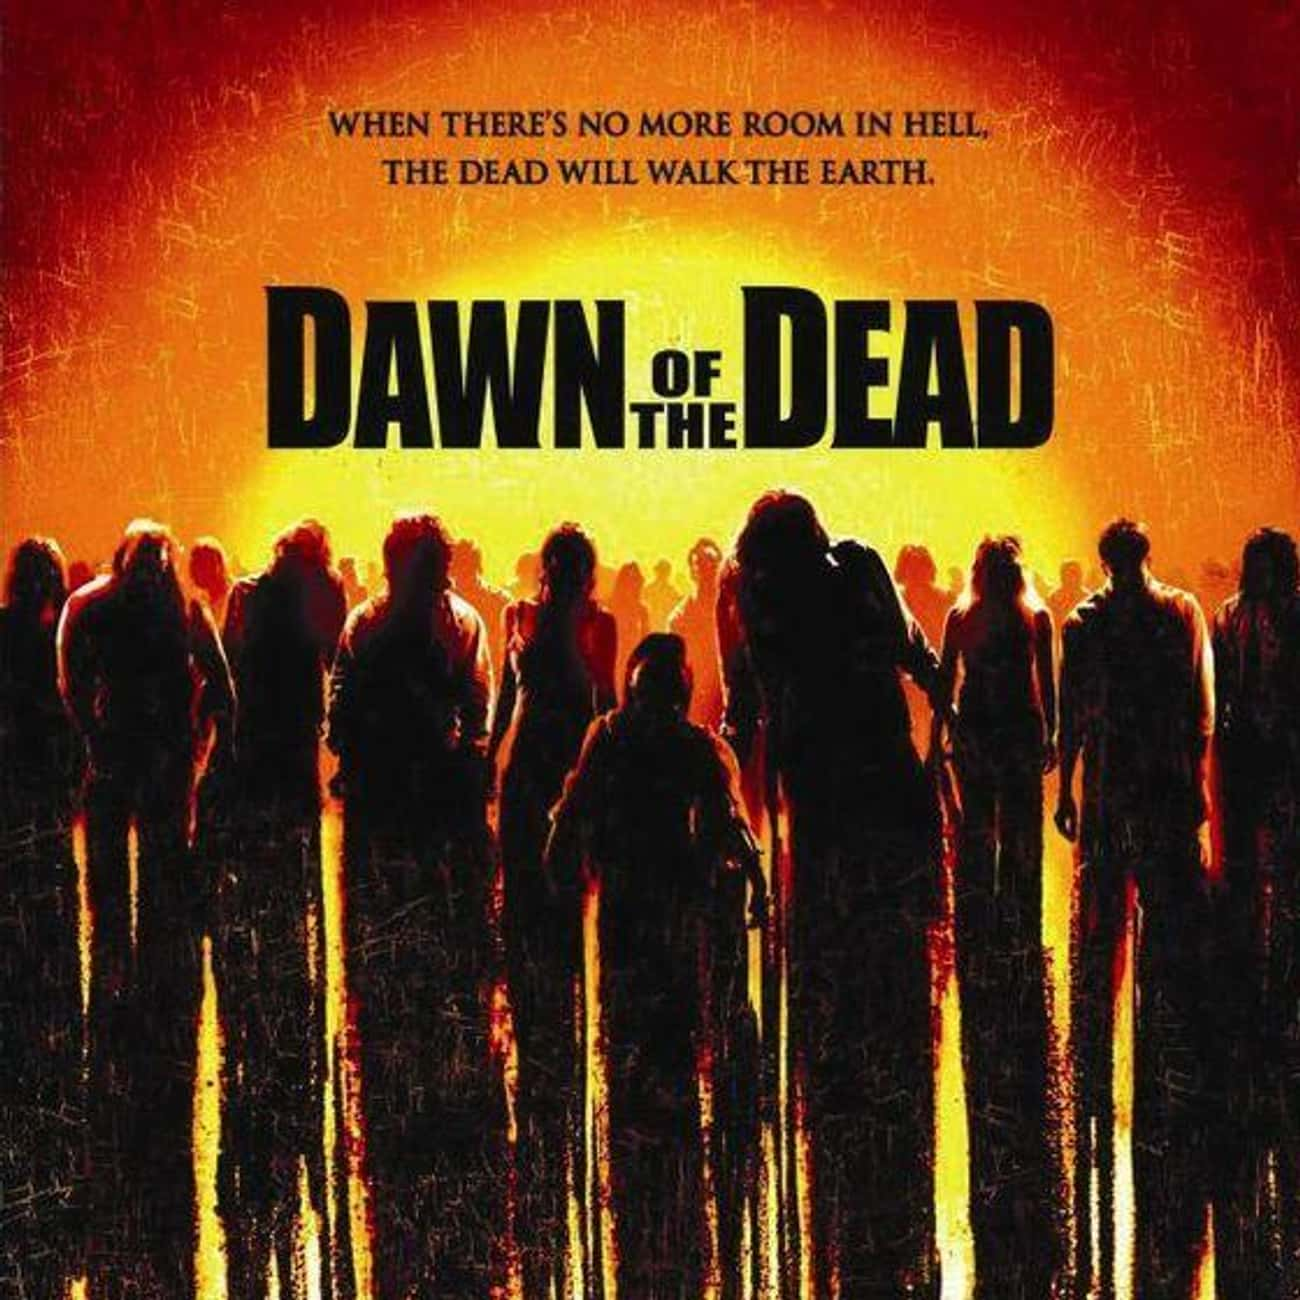 """Dawn of the Dead is listed (or ranked) 2 on the list Shows & Movies to Watch If You Love """"The Walking Dead"""""""